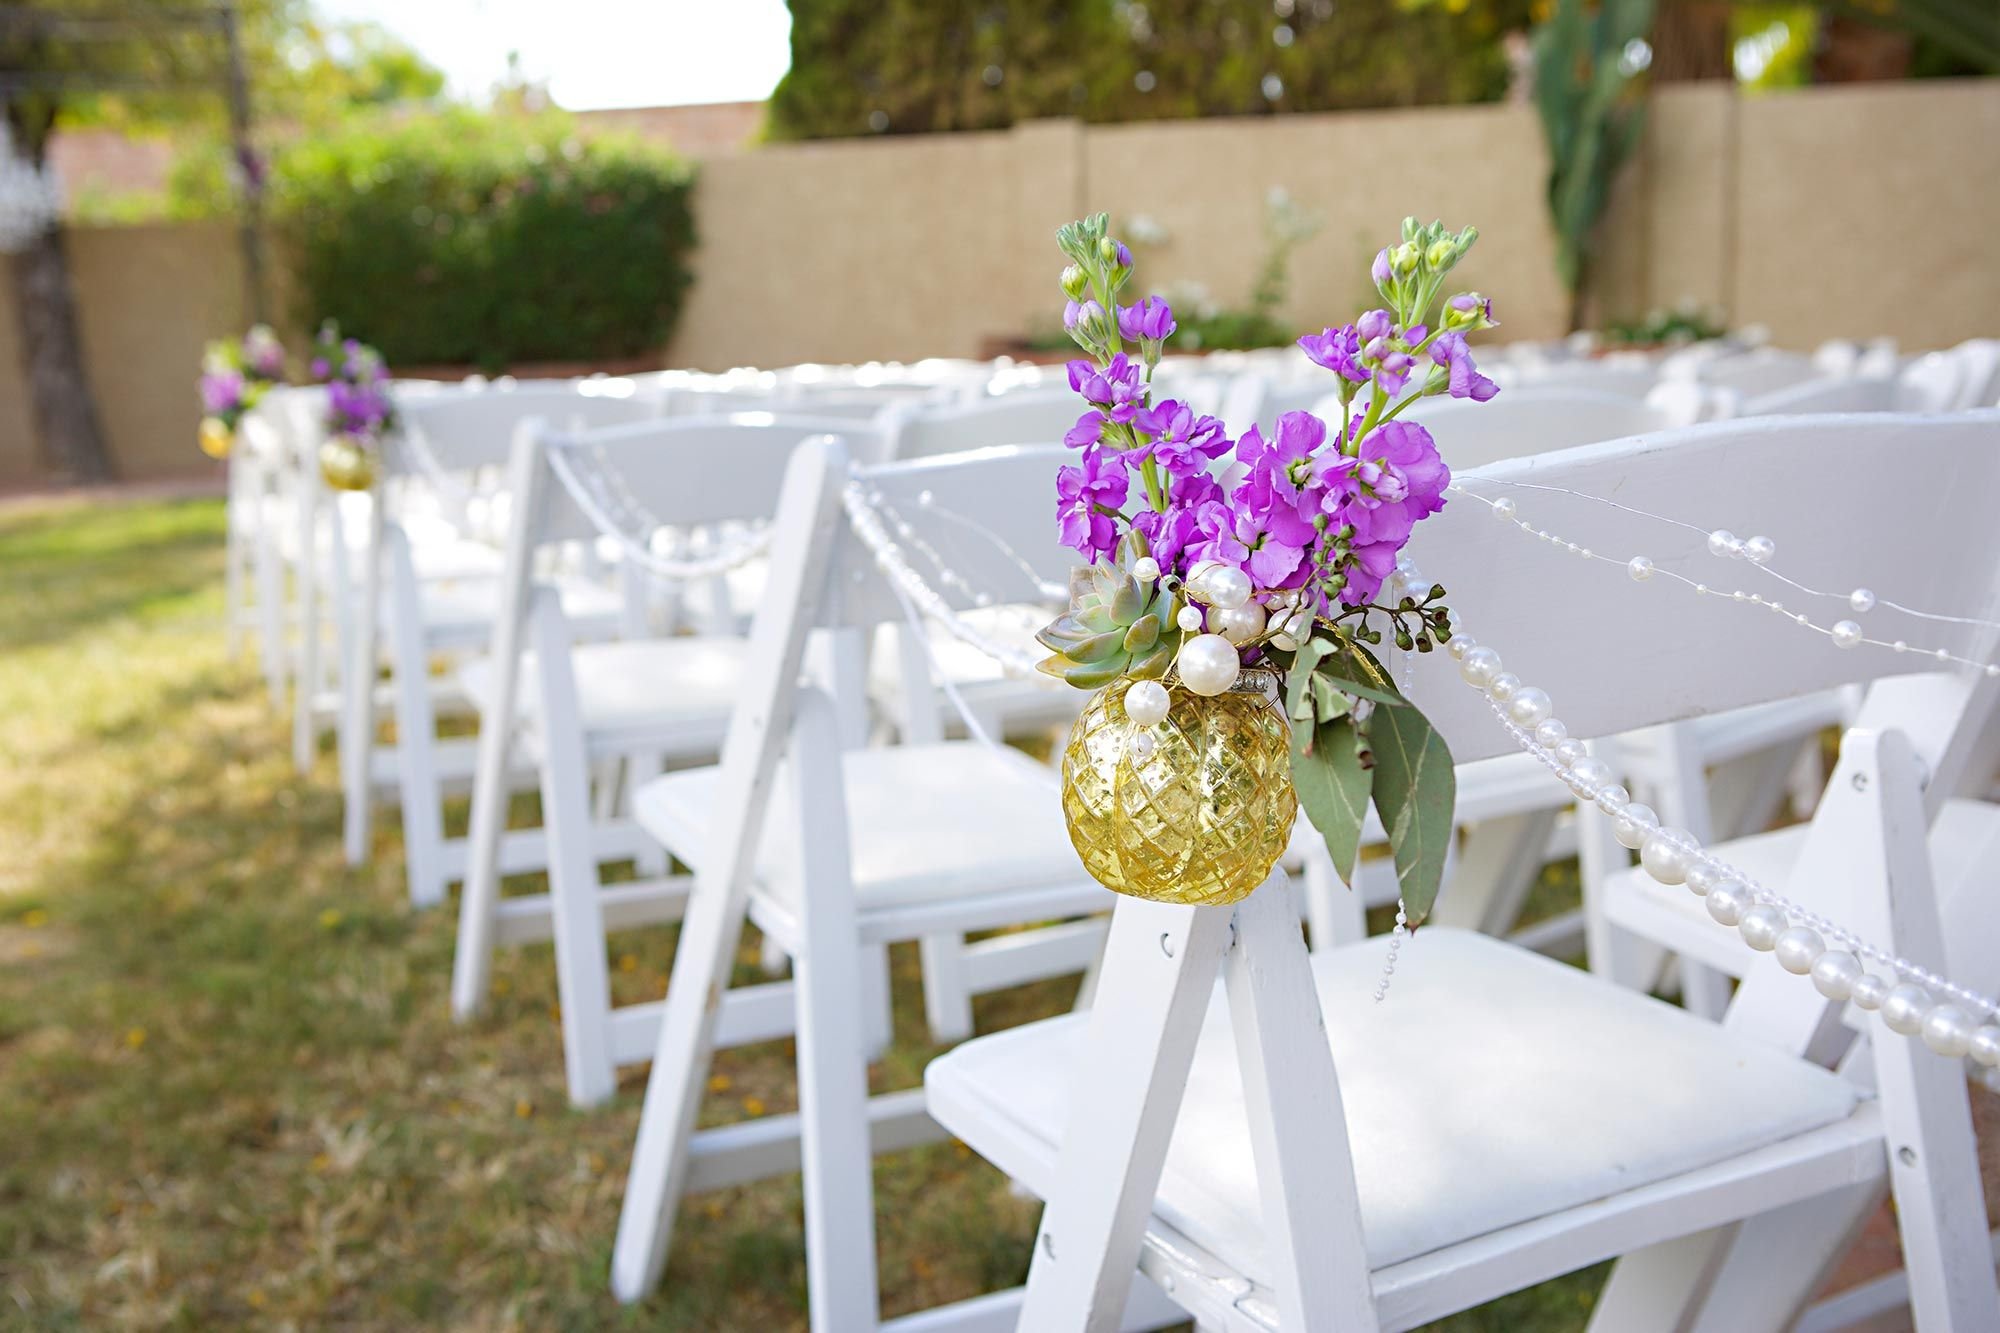 backyard formal on elegant gorgeous with ideas help decorations for best hd decor resolution wedding